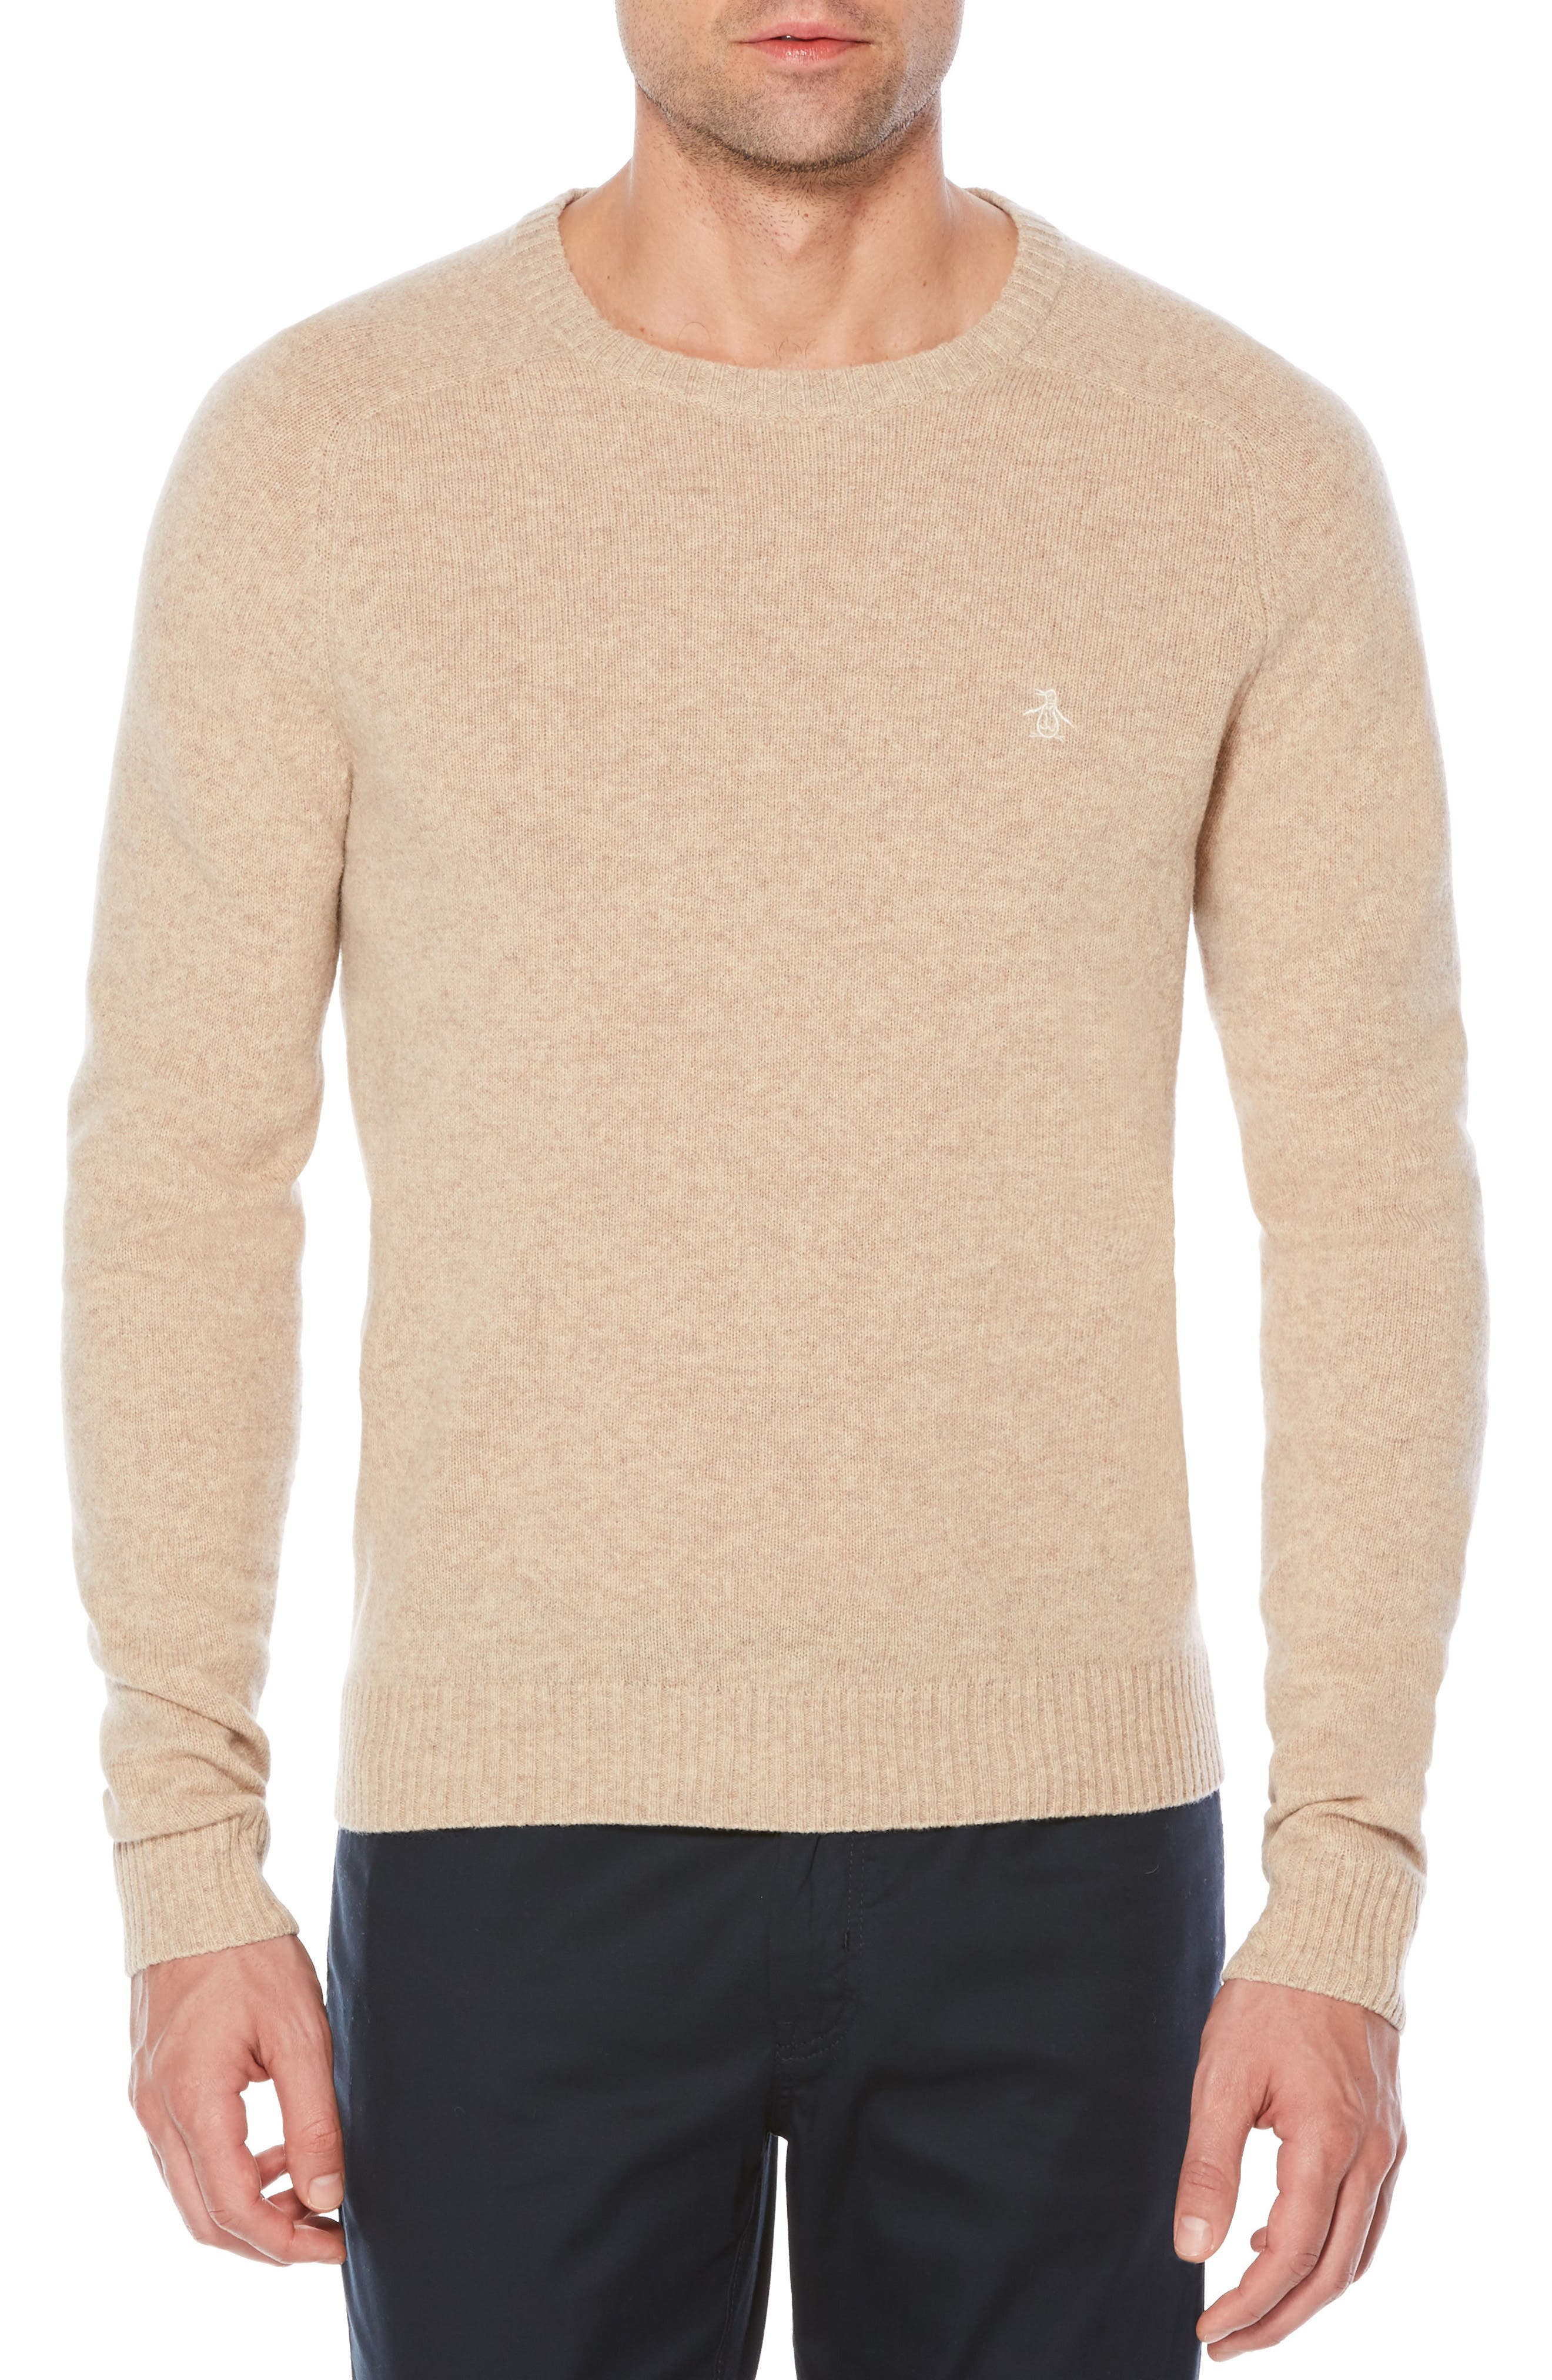 P55 Lambswool Sweater,                         Main,                         color,